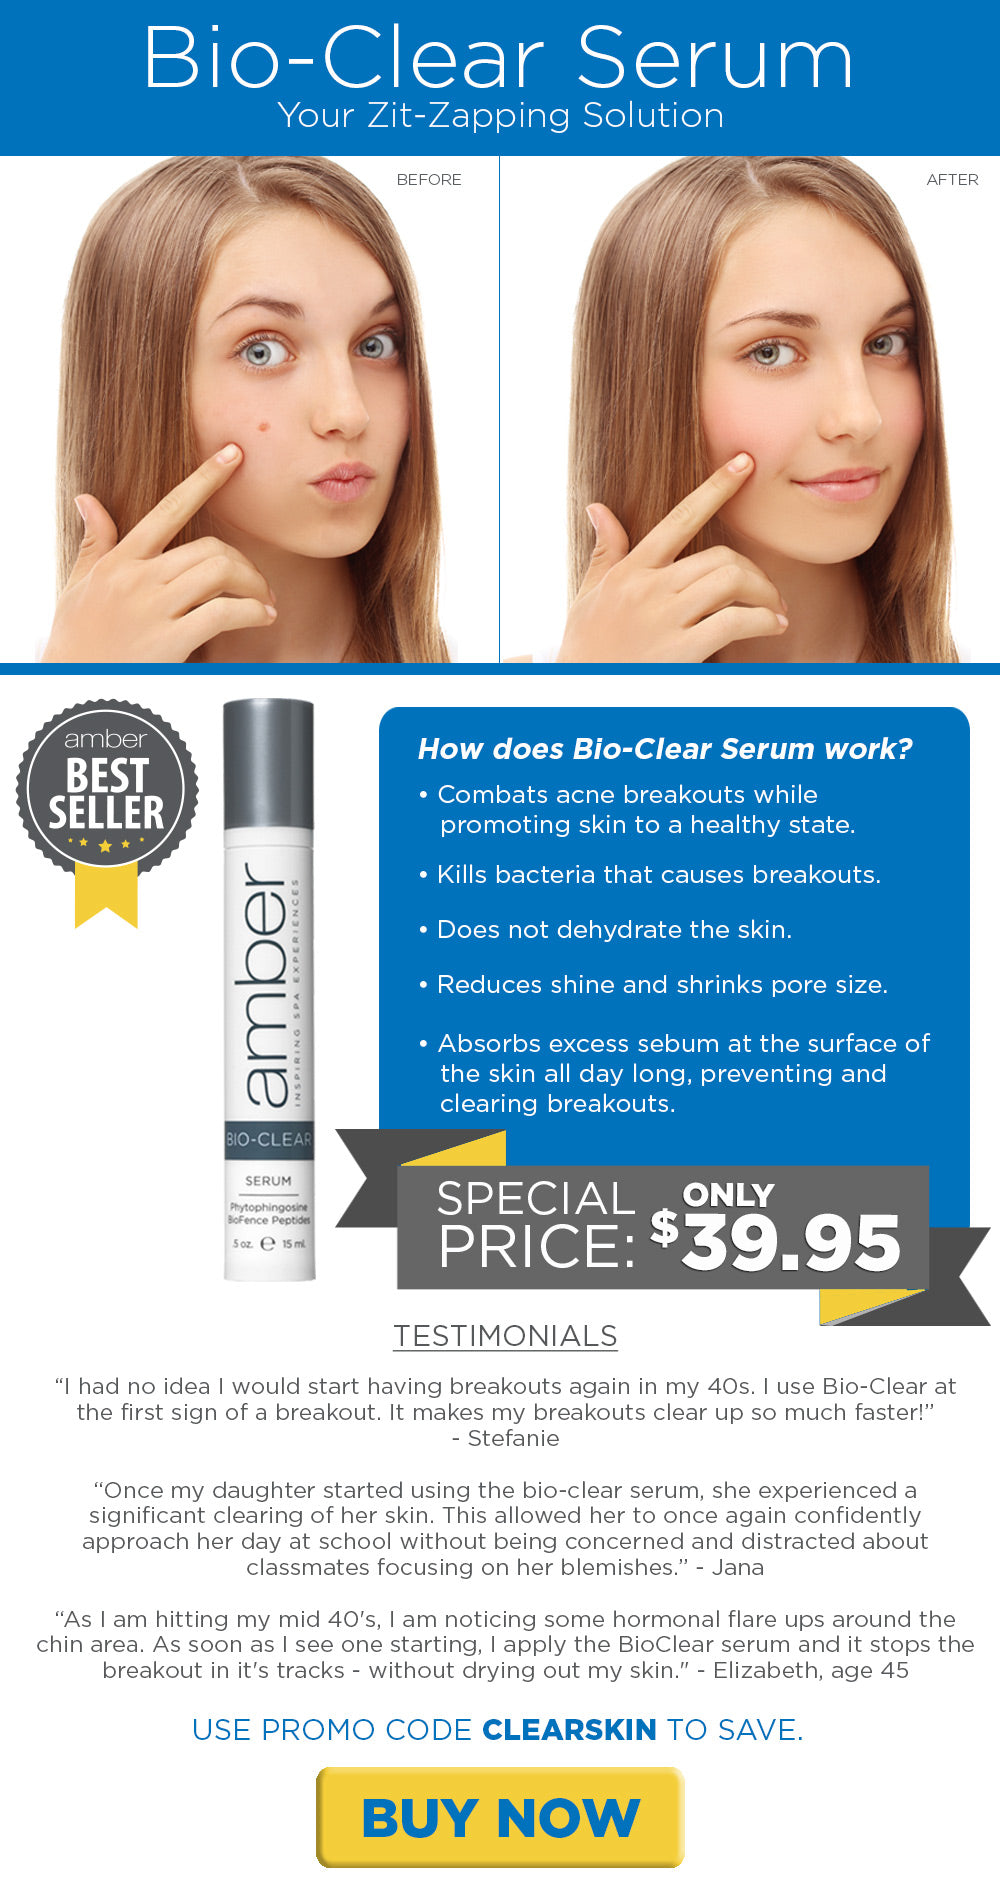 Get rid of acne and zits with bio-clear serum.